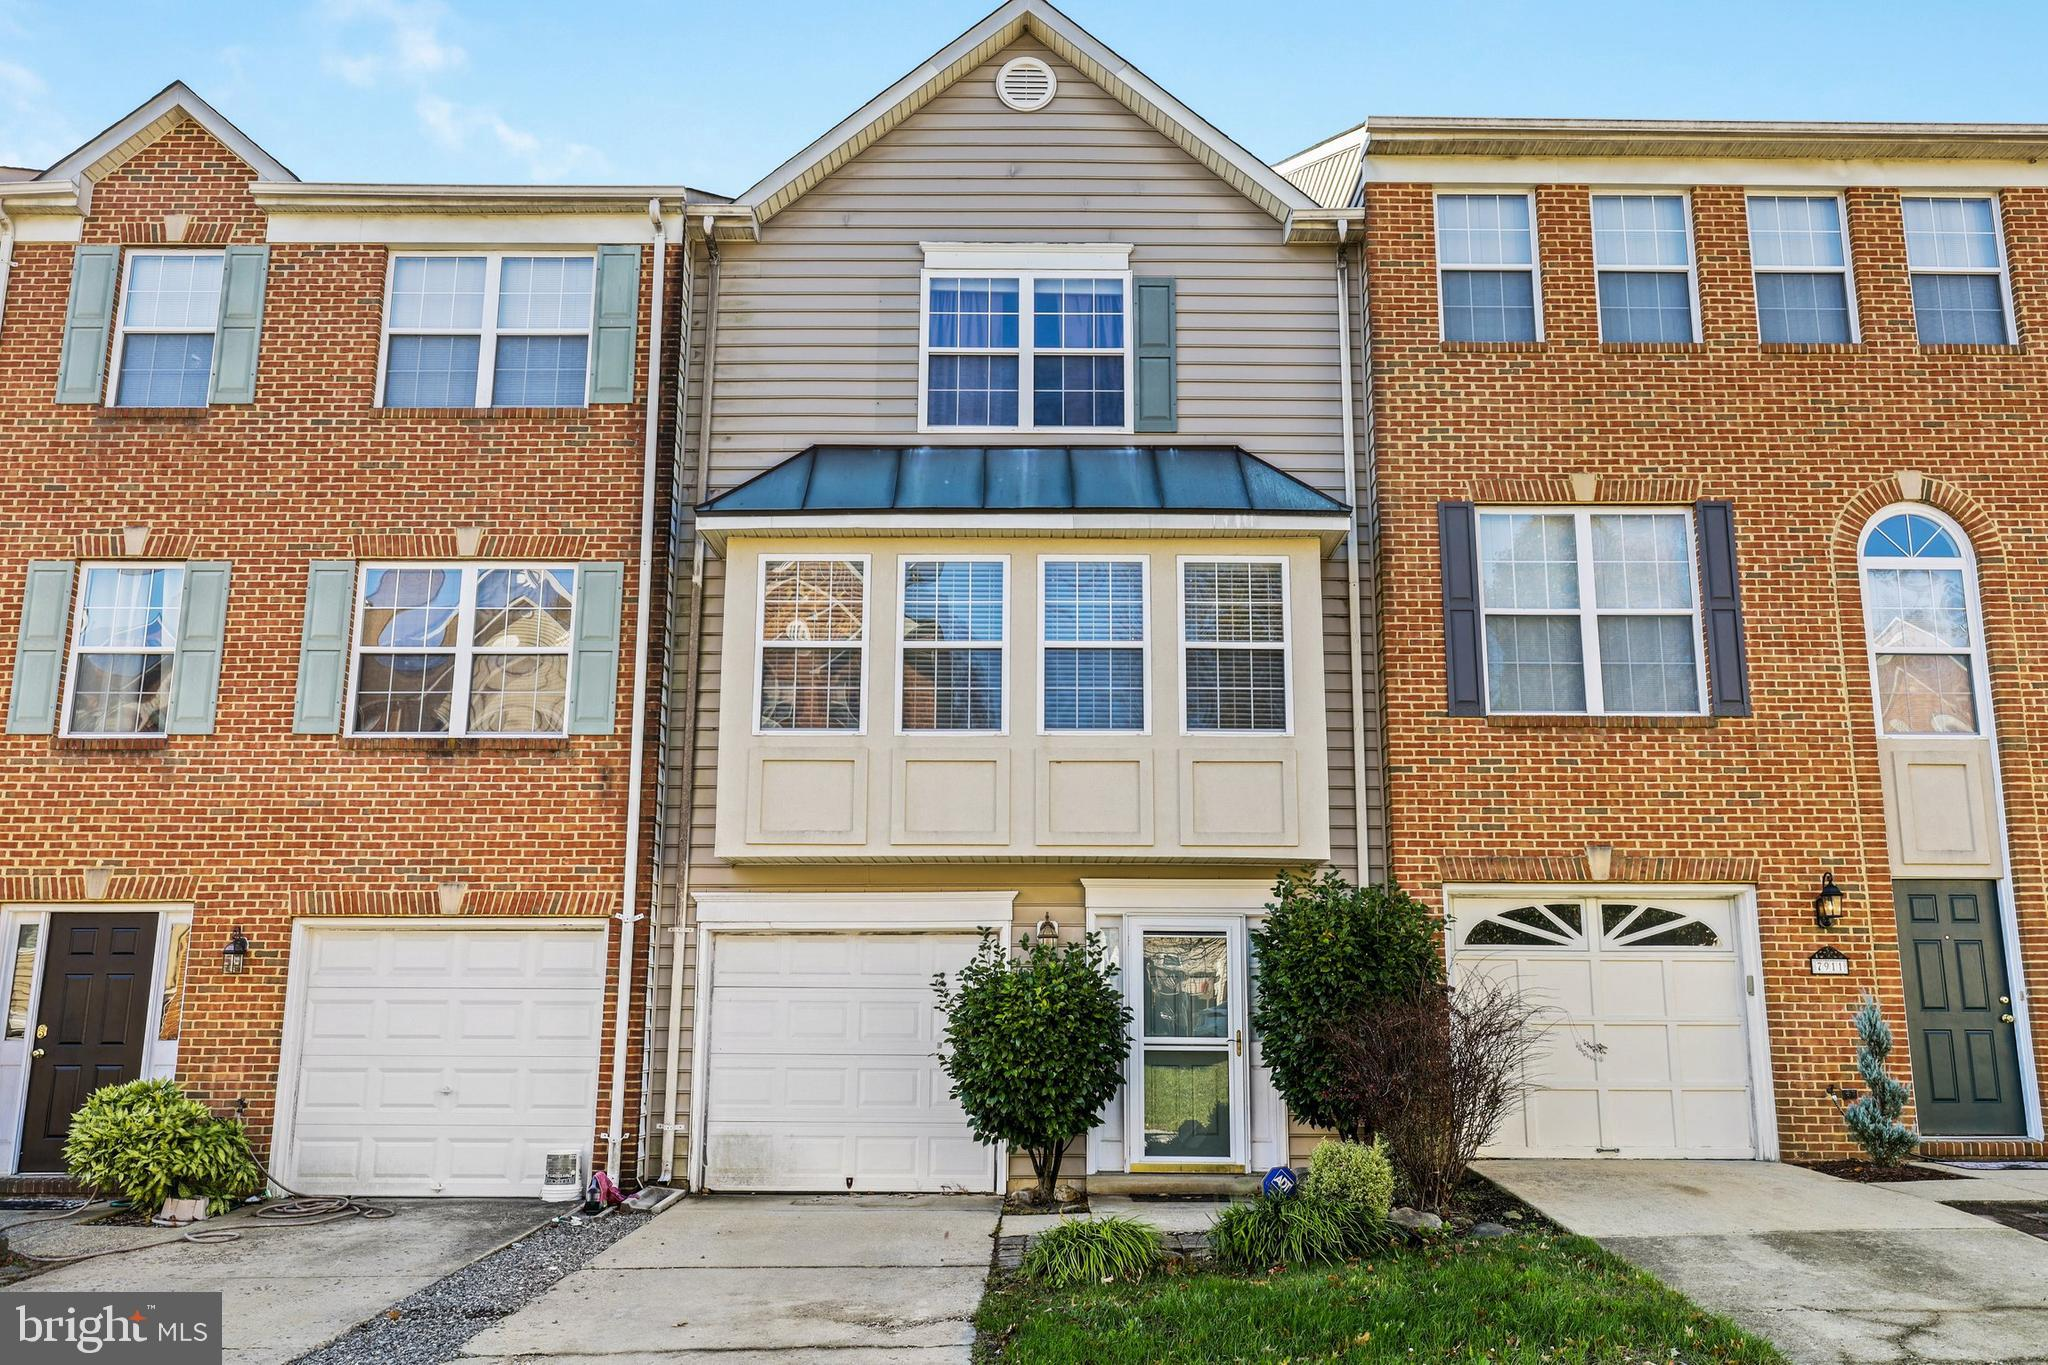 Great interior townhome in Highgrove with a great price. Two bedrooms and two full baths on upper le